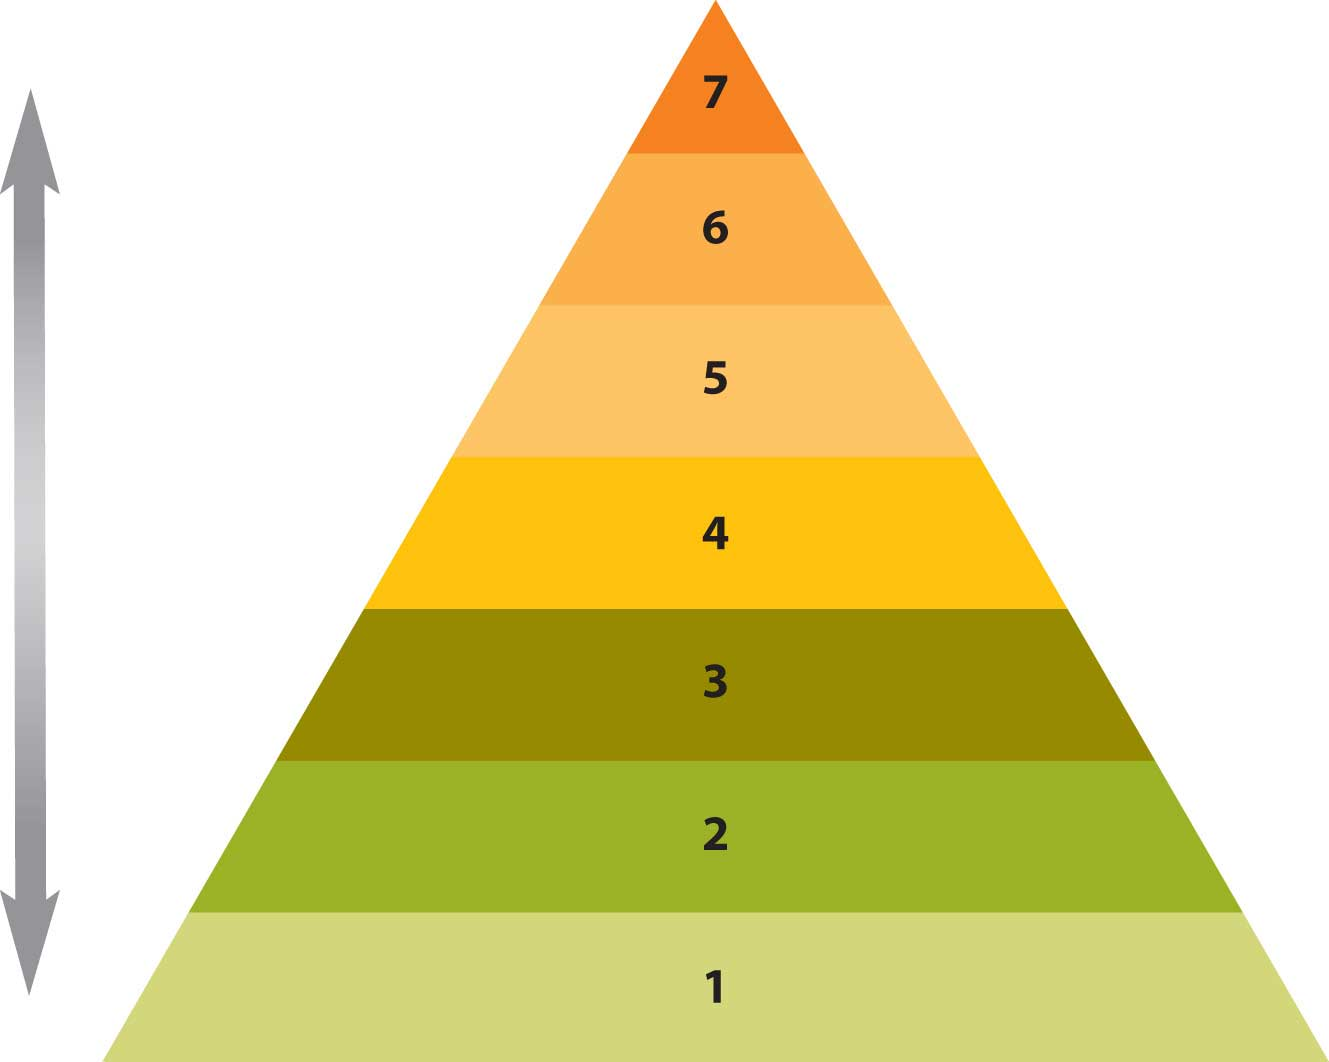 Maslow's Hierarchy of Needs (a triangle with 1 at the bottom, and 7 at the top)